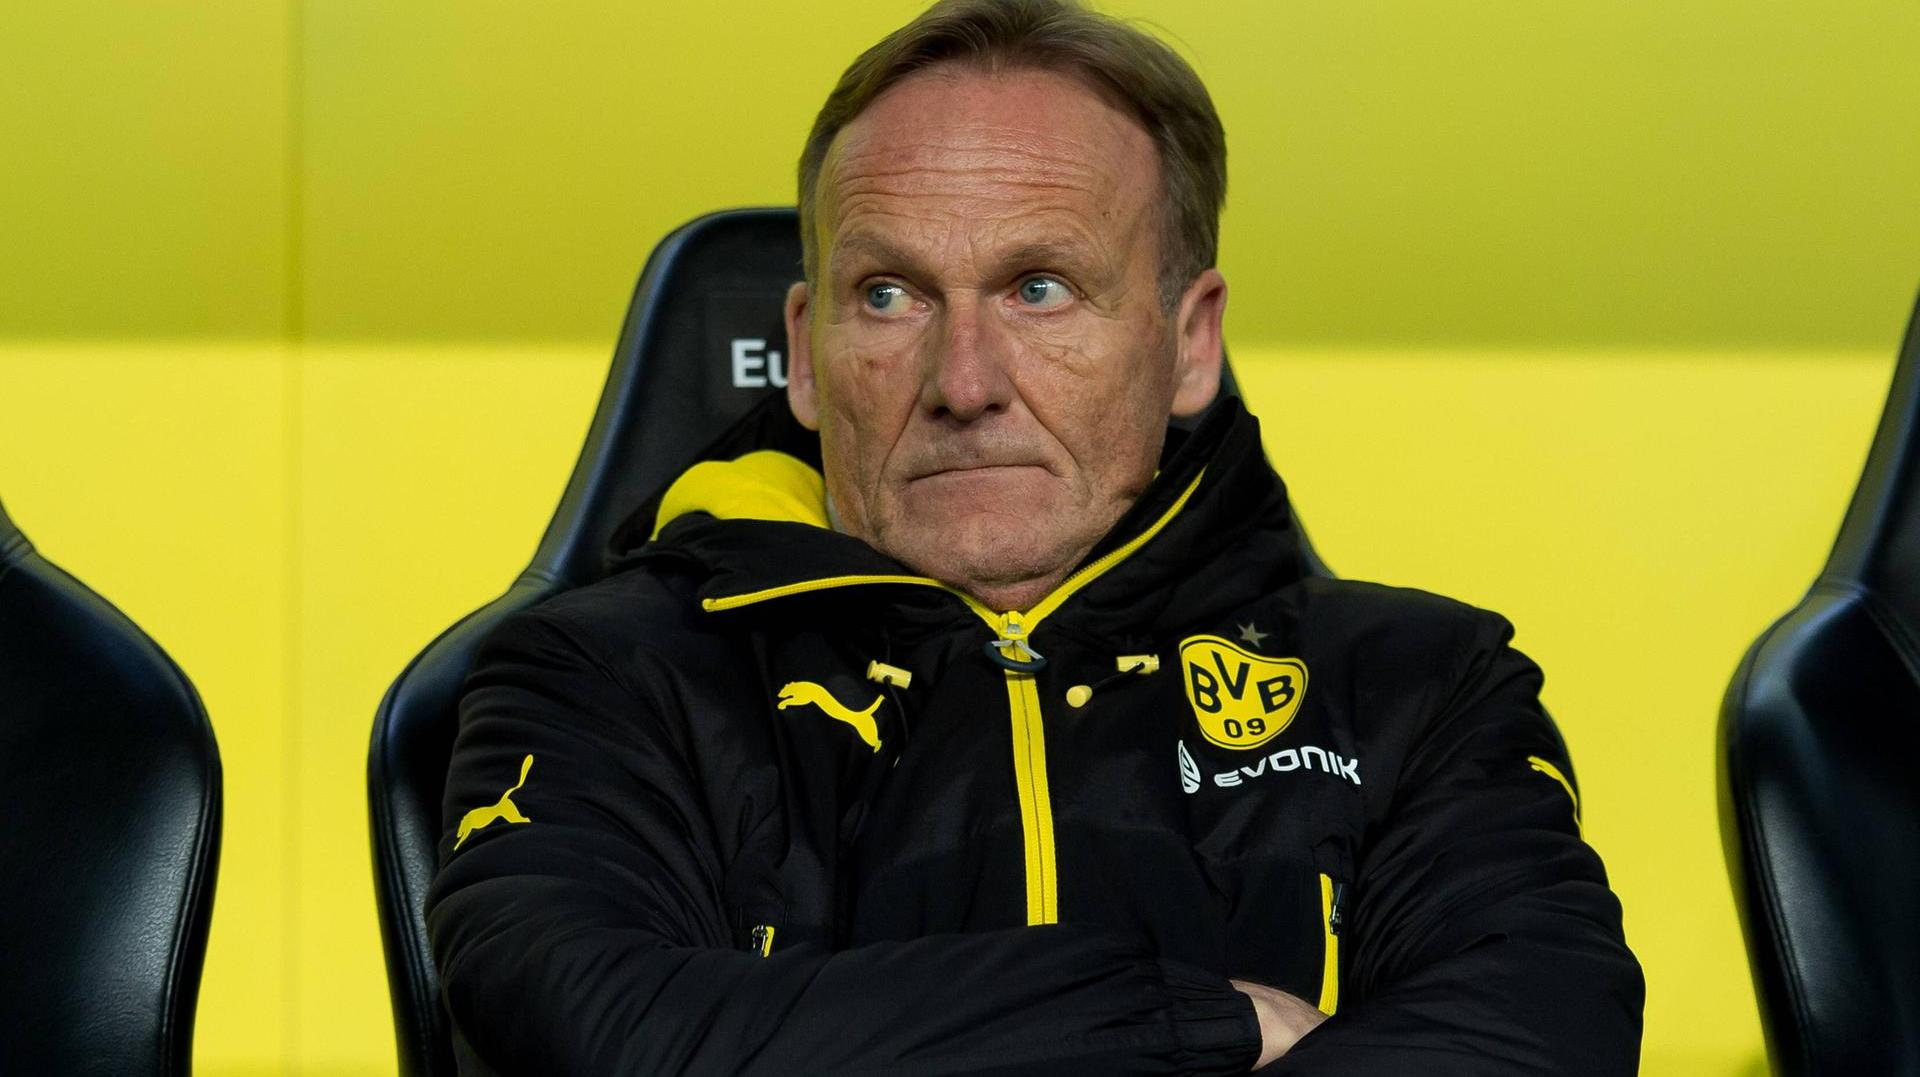 borussia dortmund bvb boss watzke nach fan krawallen in. Black Bedroom Furniture Sets. Home Design Ideas